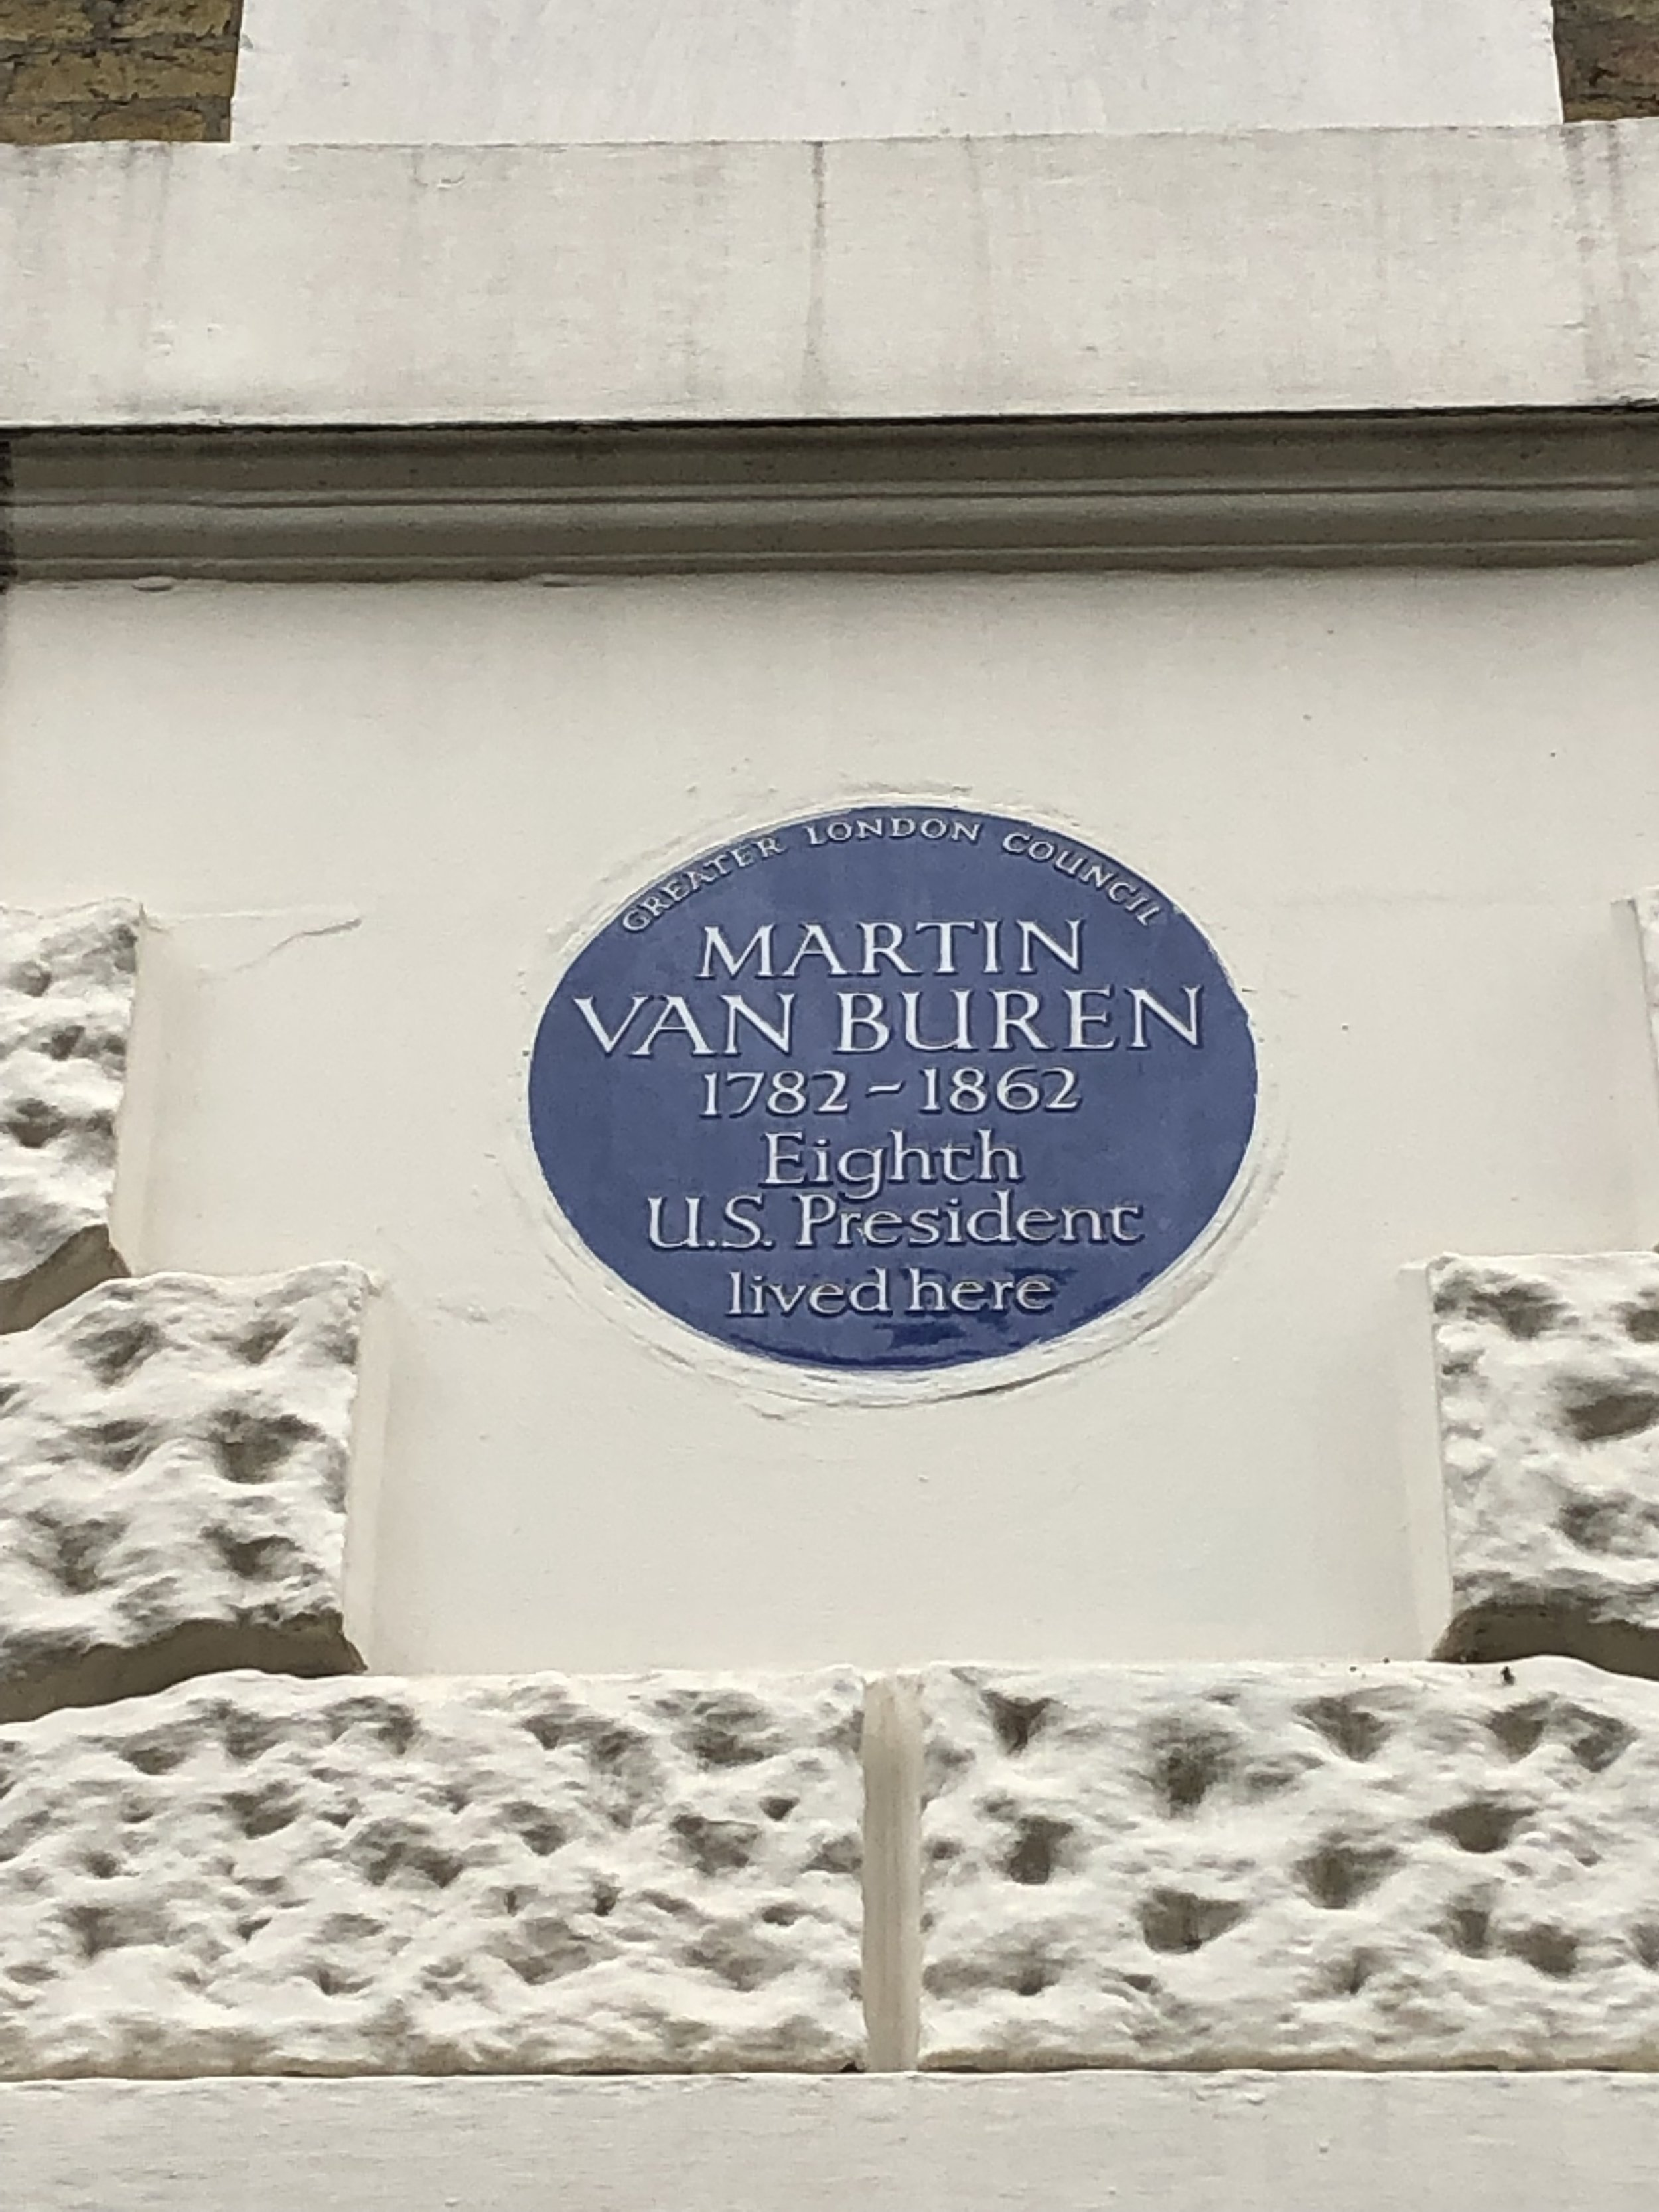 I was surprised to see this on a side street in London. I'm pretty sure his residency here was very short. As described in  A Presidents Story,  Van Buren did a brief stint as Jackson's Minister to Great Britain while he was manipulating John Calhoun out of Jackson's favor.